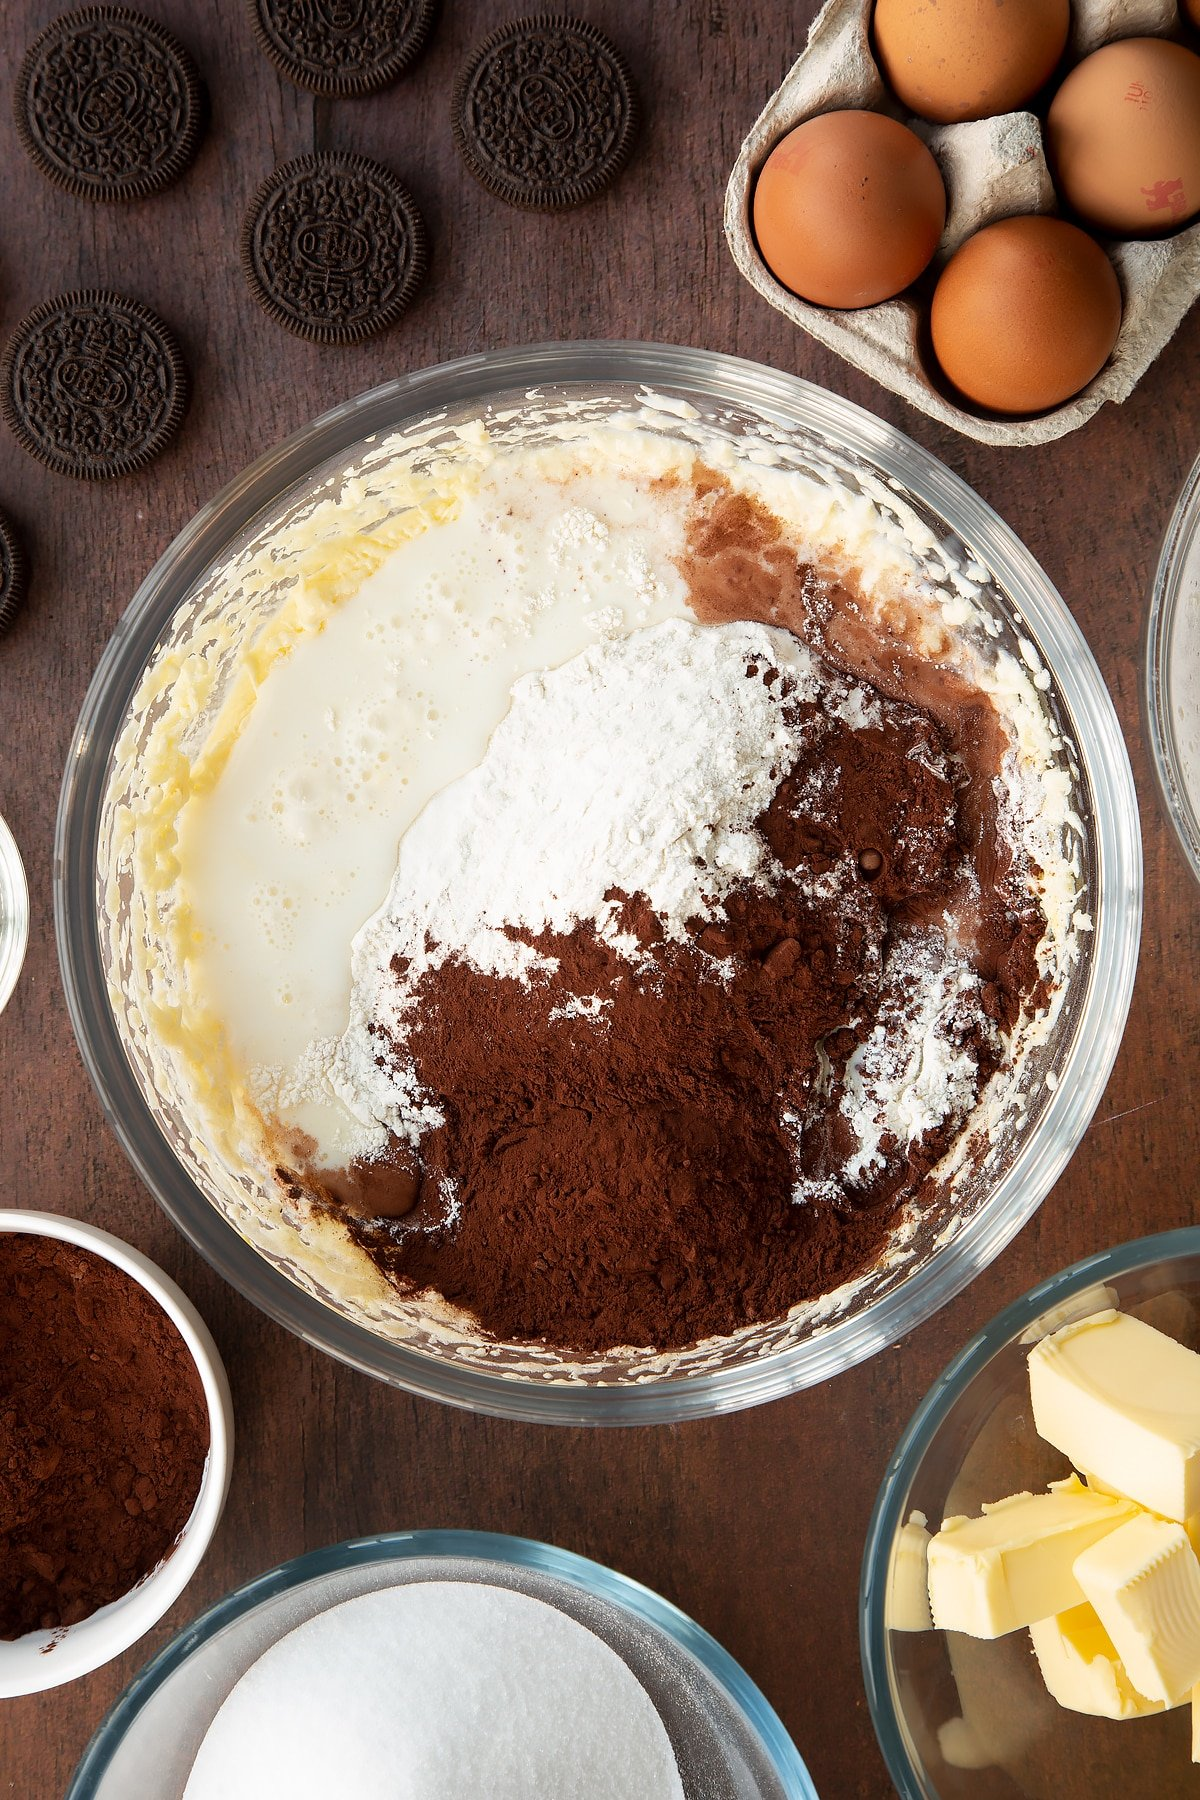 Overhead shot of batter mix with flour, milk, cocoa powder and baking powder in a large clear bowl